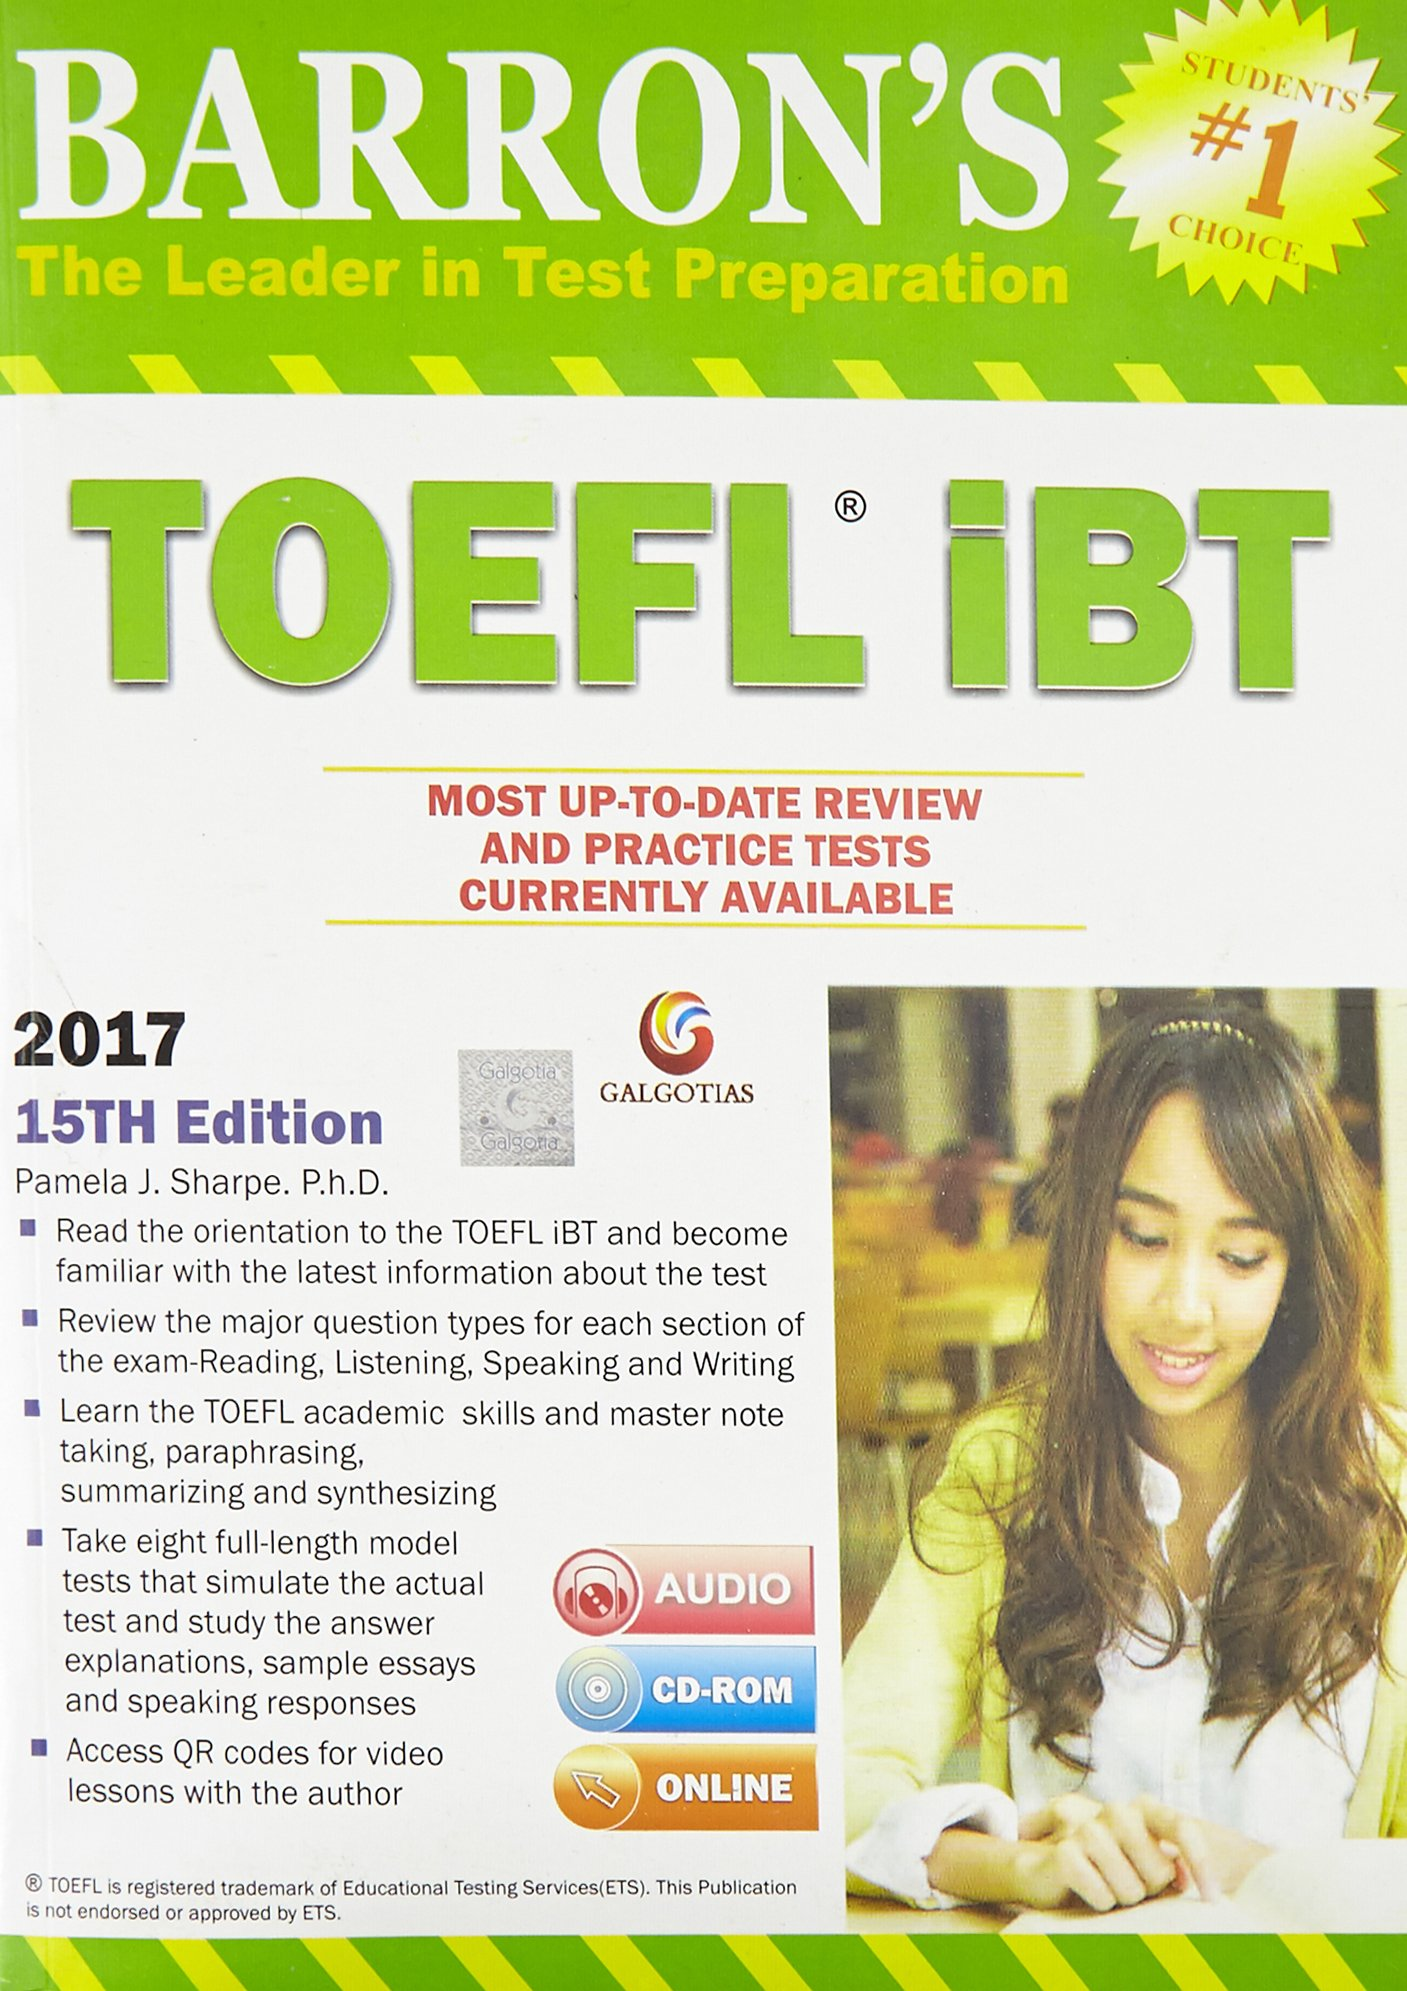 Amazon buy barrons toefl ibt 15th edition dvd book online at amazon buy barrons toefl ibt 15th edition dvd book online at low prices in india barrons toefl ibt 15th edition dvd reviews ratings fandeluxe Choice Image